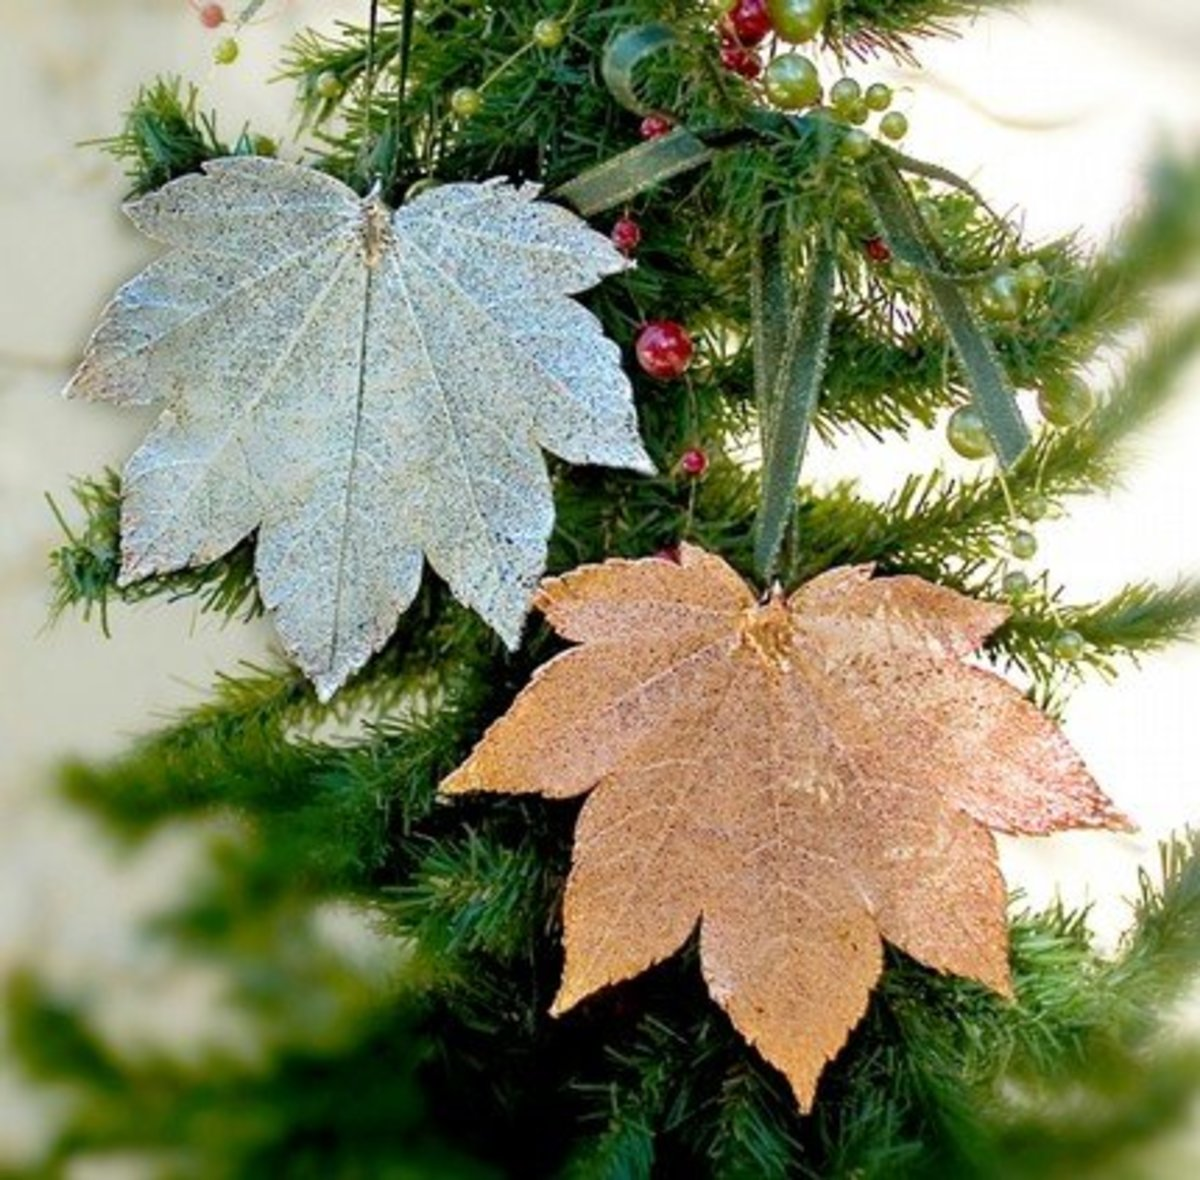 Spray painted leaf ornaments